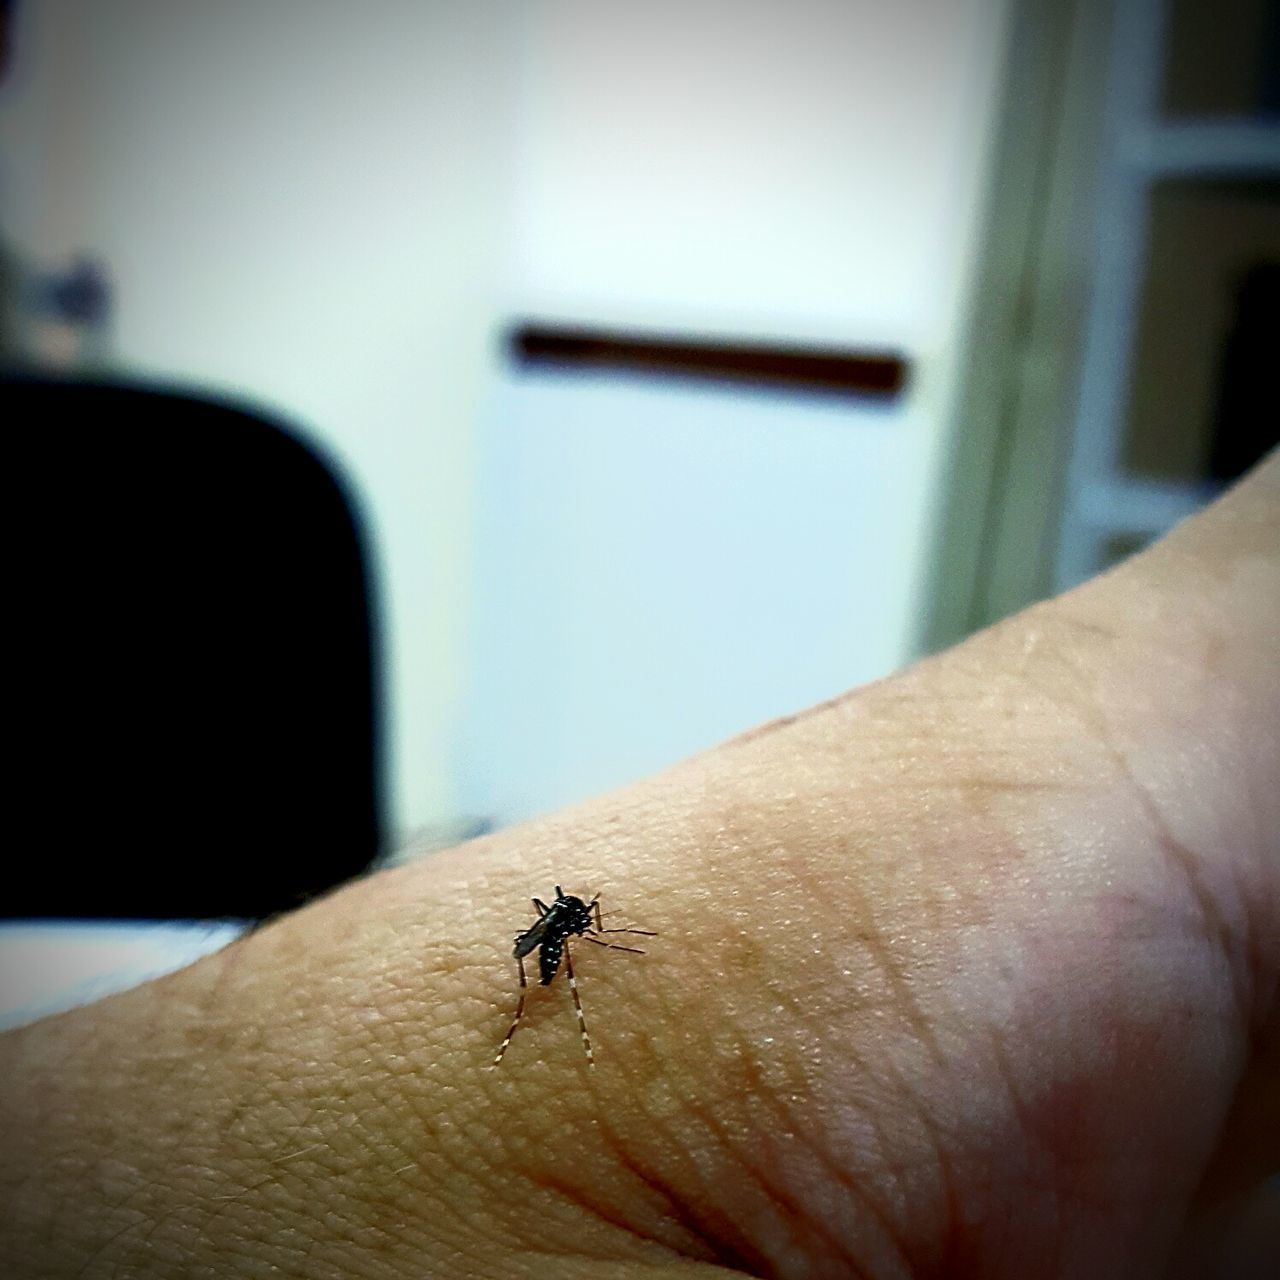 Insect Animal Themes Human Body Part One Animal One Person Day Close-up Adult People Human Hand Adults Only Only Men Indoors  One Man Only Nature Mosquito Aedes Aegypti Mao Hand Inseto Insetosdobrasil